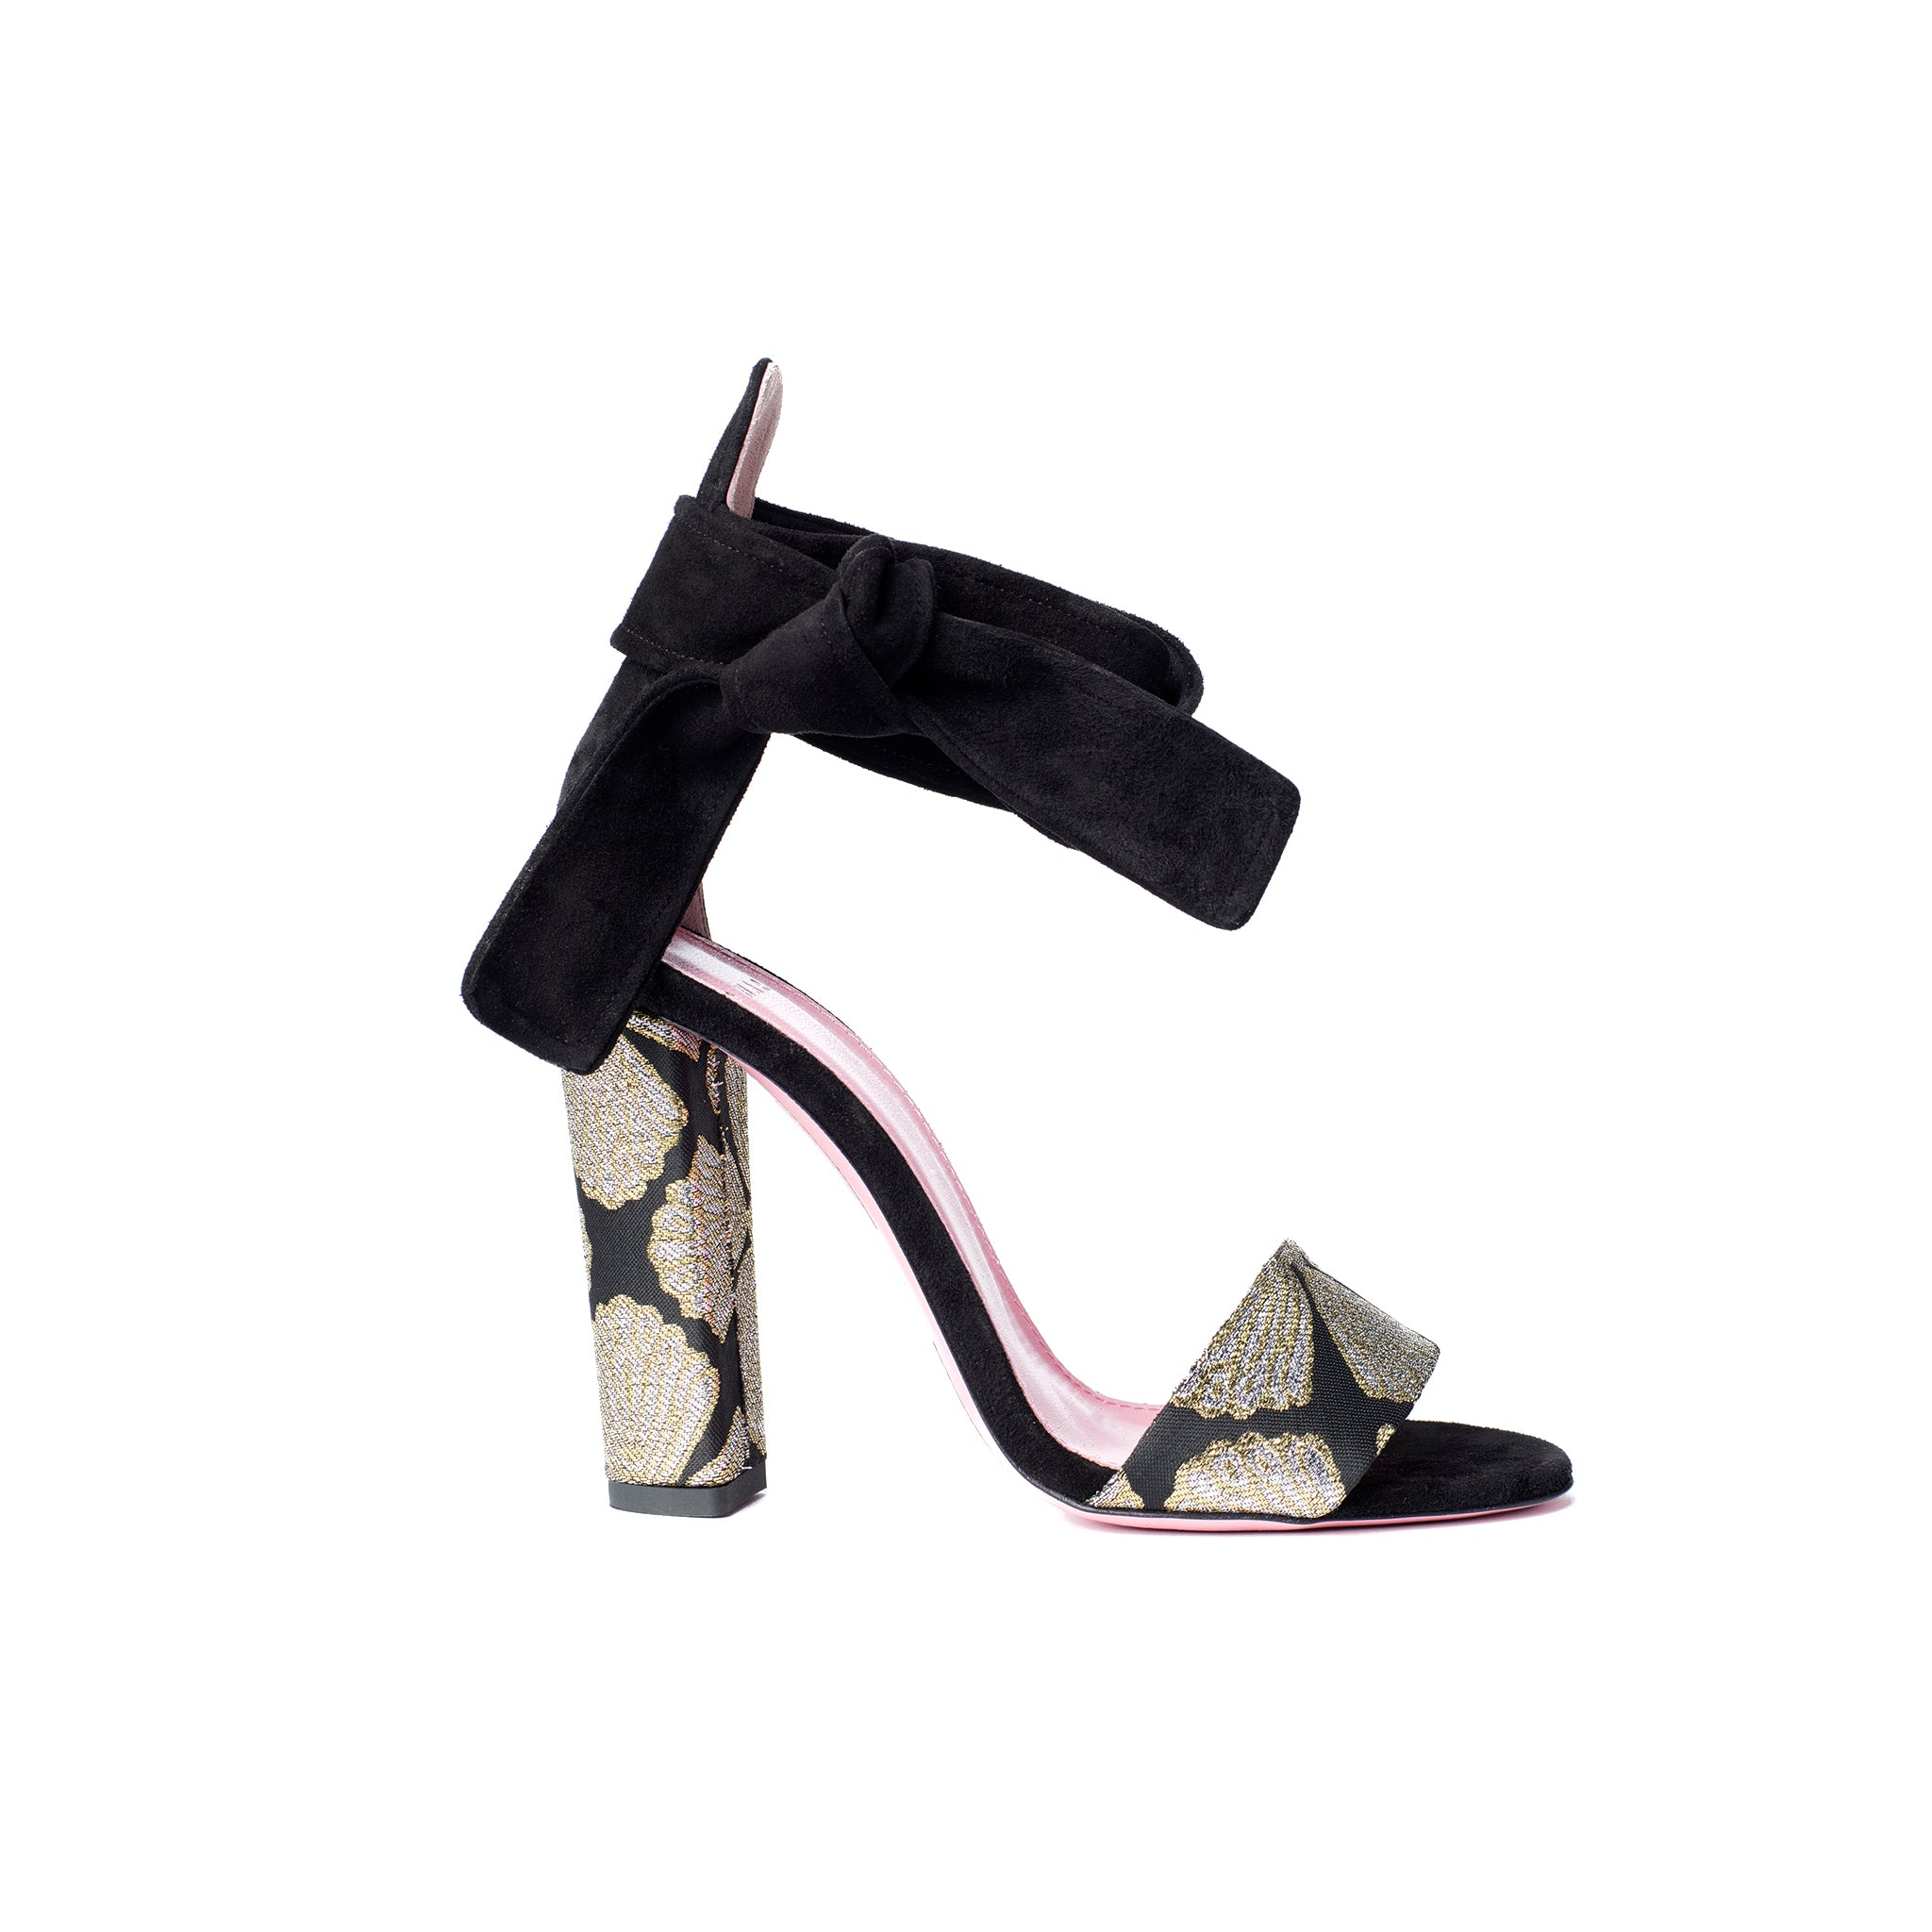 Phare Ankle tie block heel with metallic brocade heel and black suede